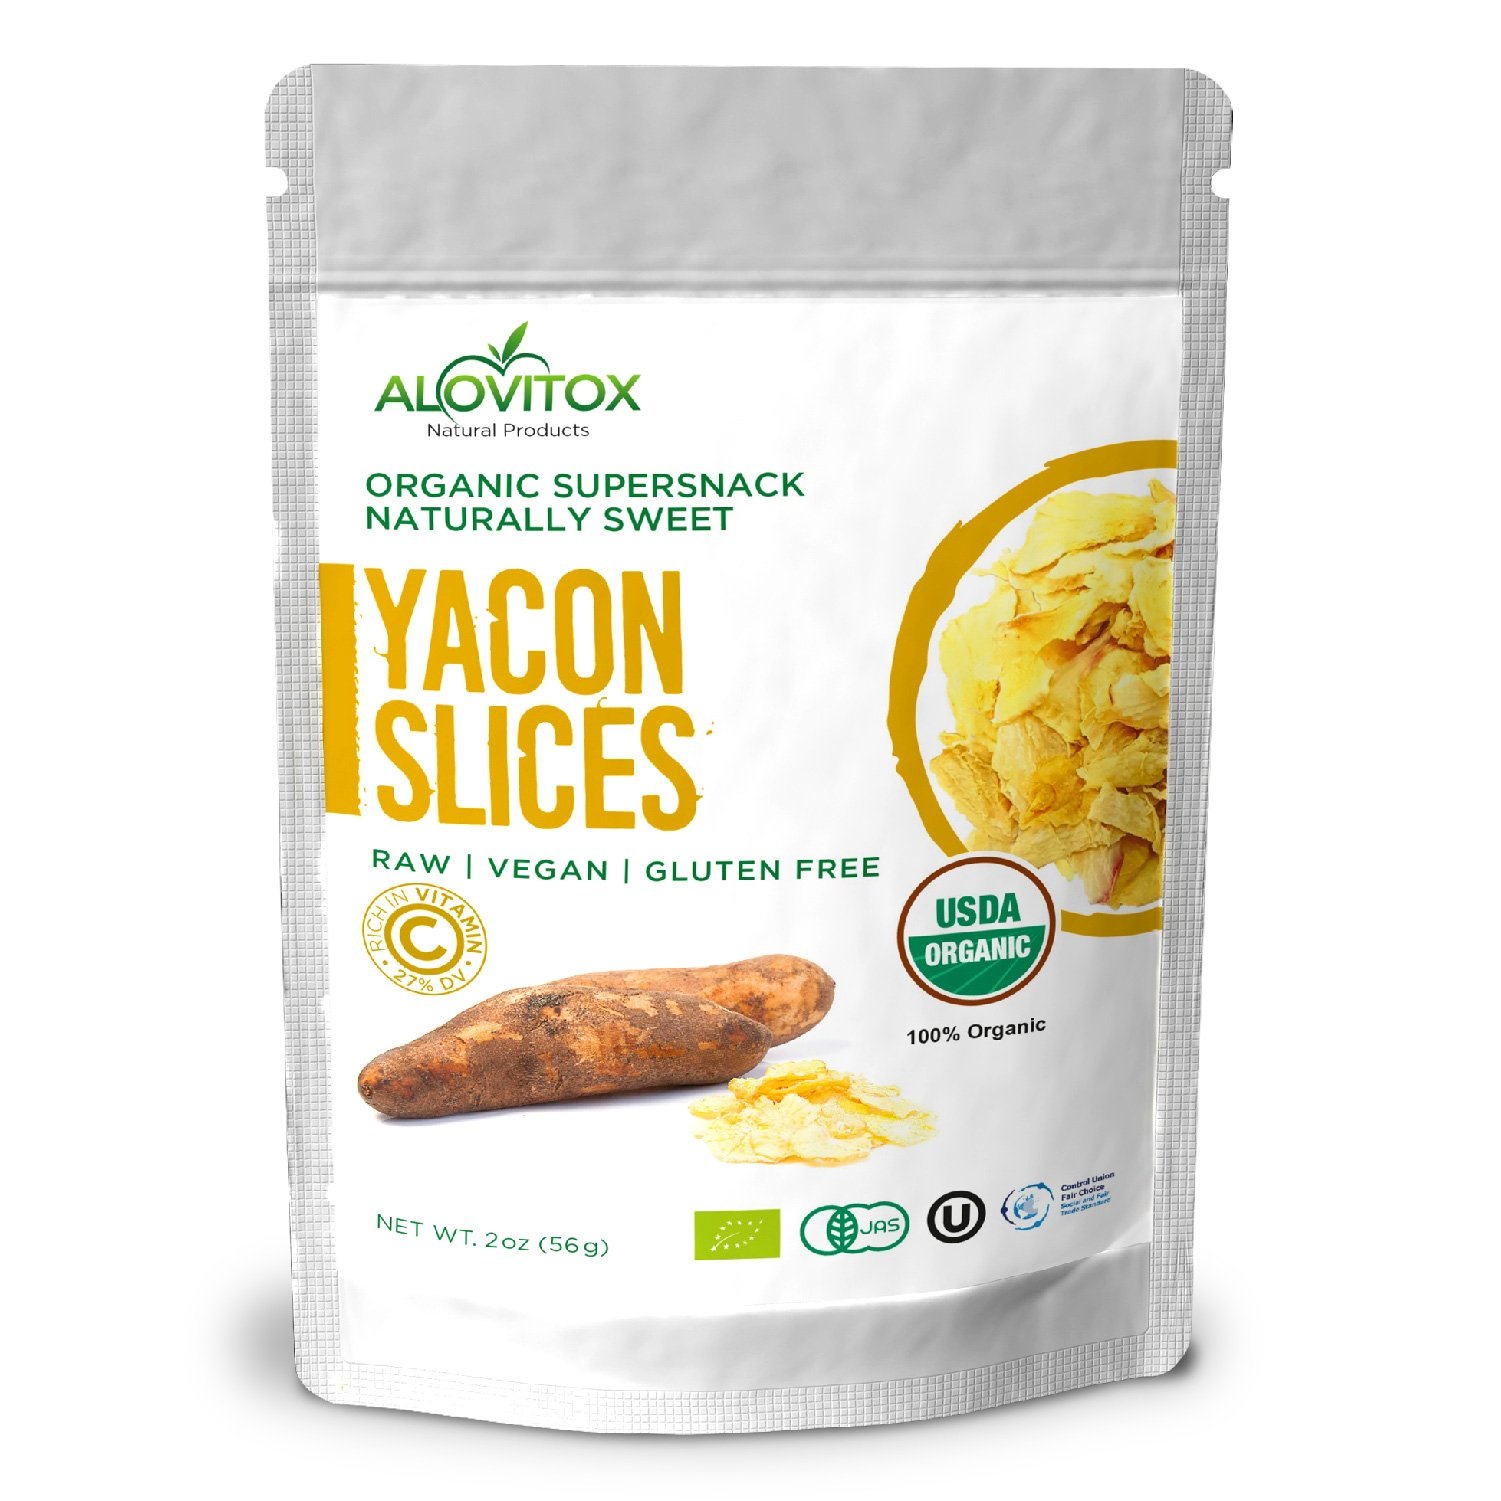 Yacon Slices - Highest Quality Wellness and Weight Loss Prebiotic Raw Keto Paleo Vegan and Gluten Free - FOS Root Diet Friendly Pure - USDA Organic 2oz by Alovitox by ALOVITOX Yacon Slices